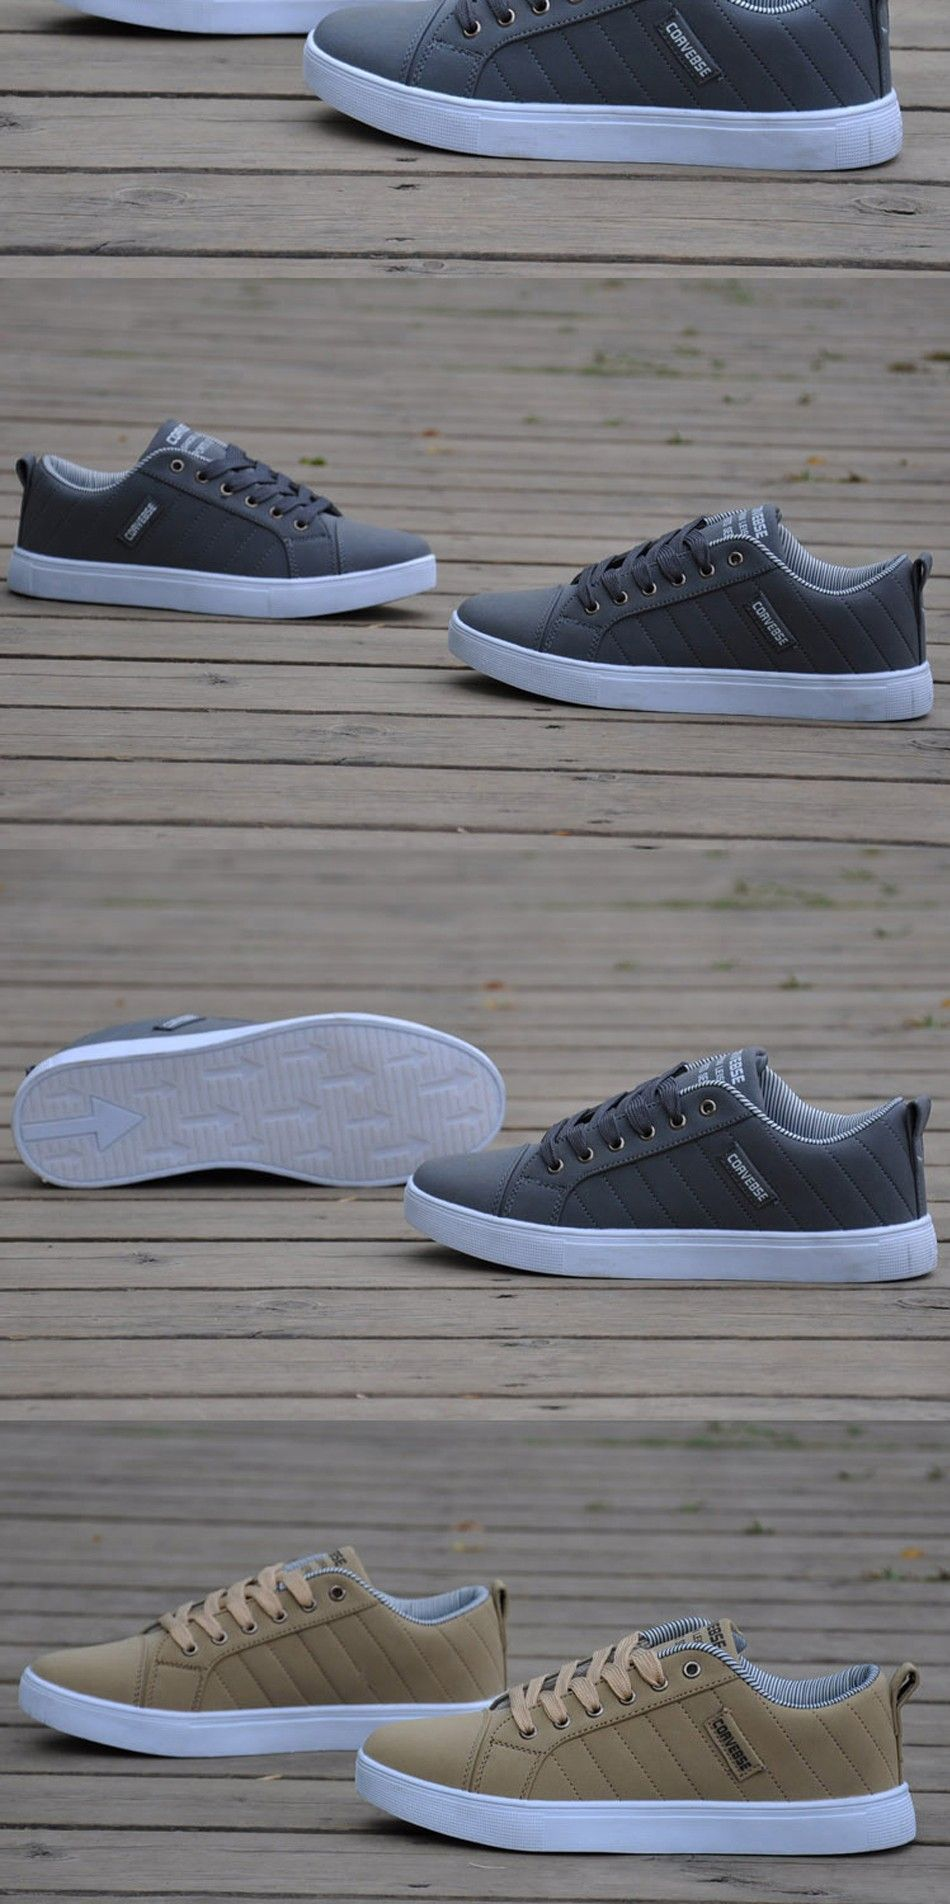 b3366d68e9b Free shipping Casual Shoes For Men Fashion Recreational Shoe Male Canvas  Man Winter Fashion Man Casual Shoes Men s Shoes-in Men s Casual Shoes from Shoes  on ...